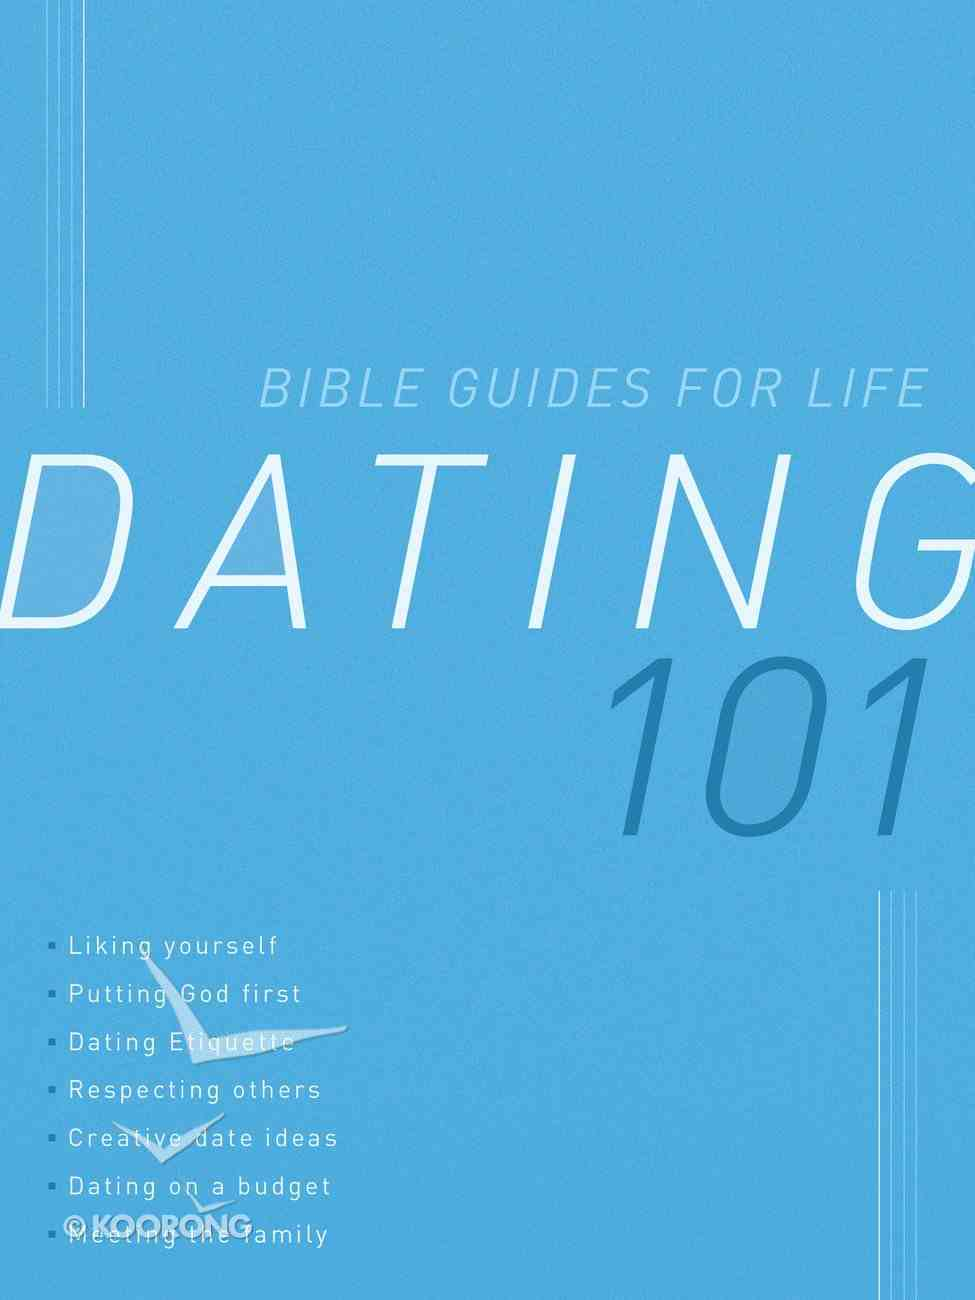 Dating 101 (Bible Guides For Life Series) eBook